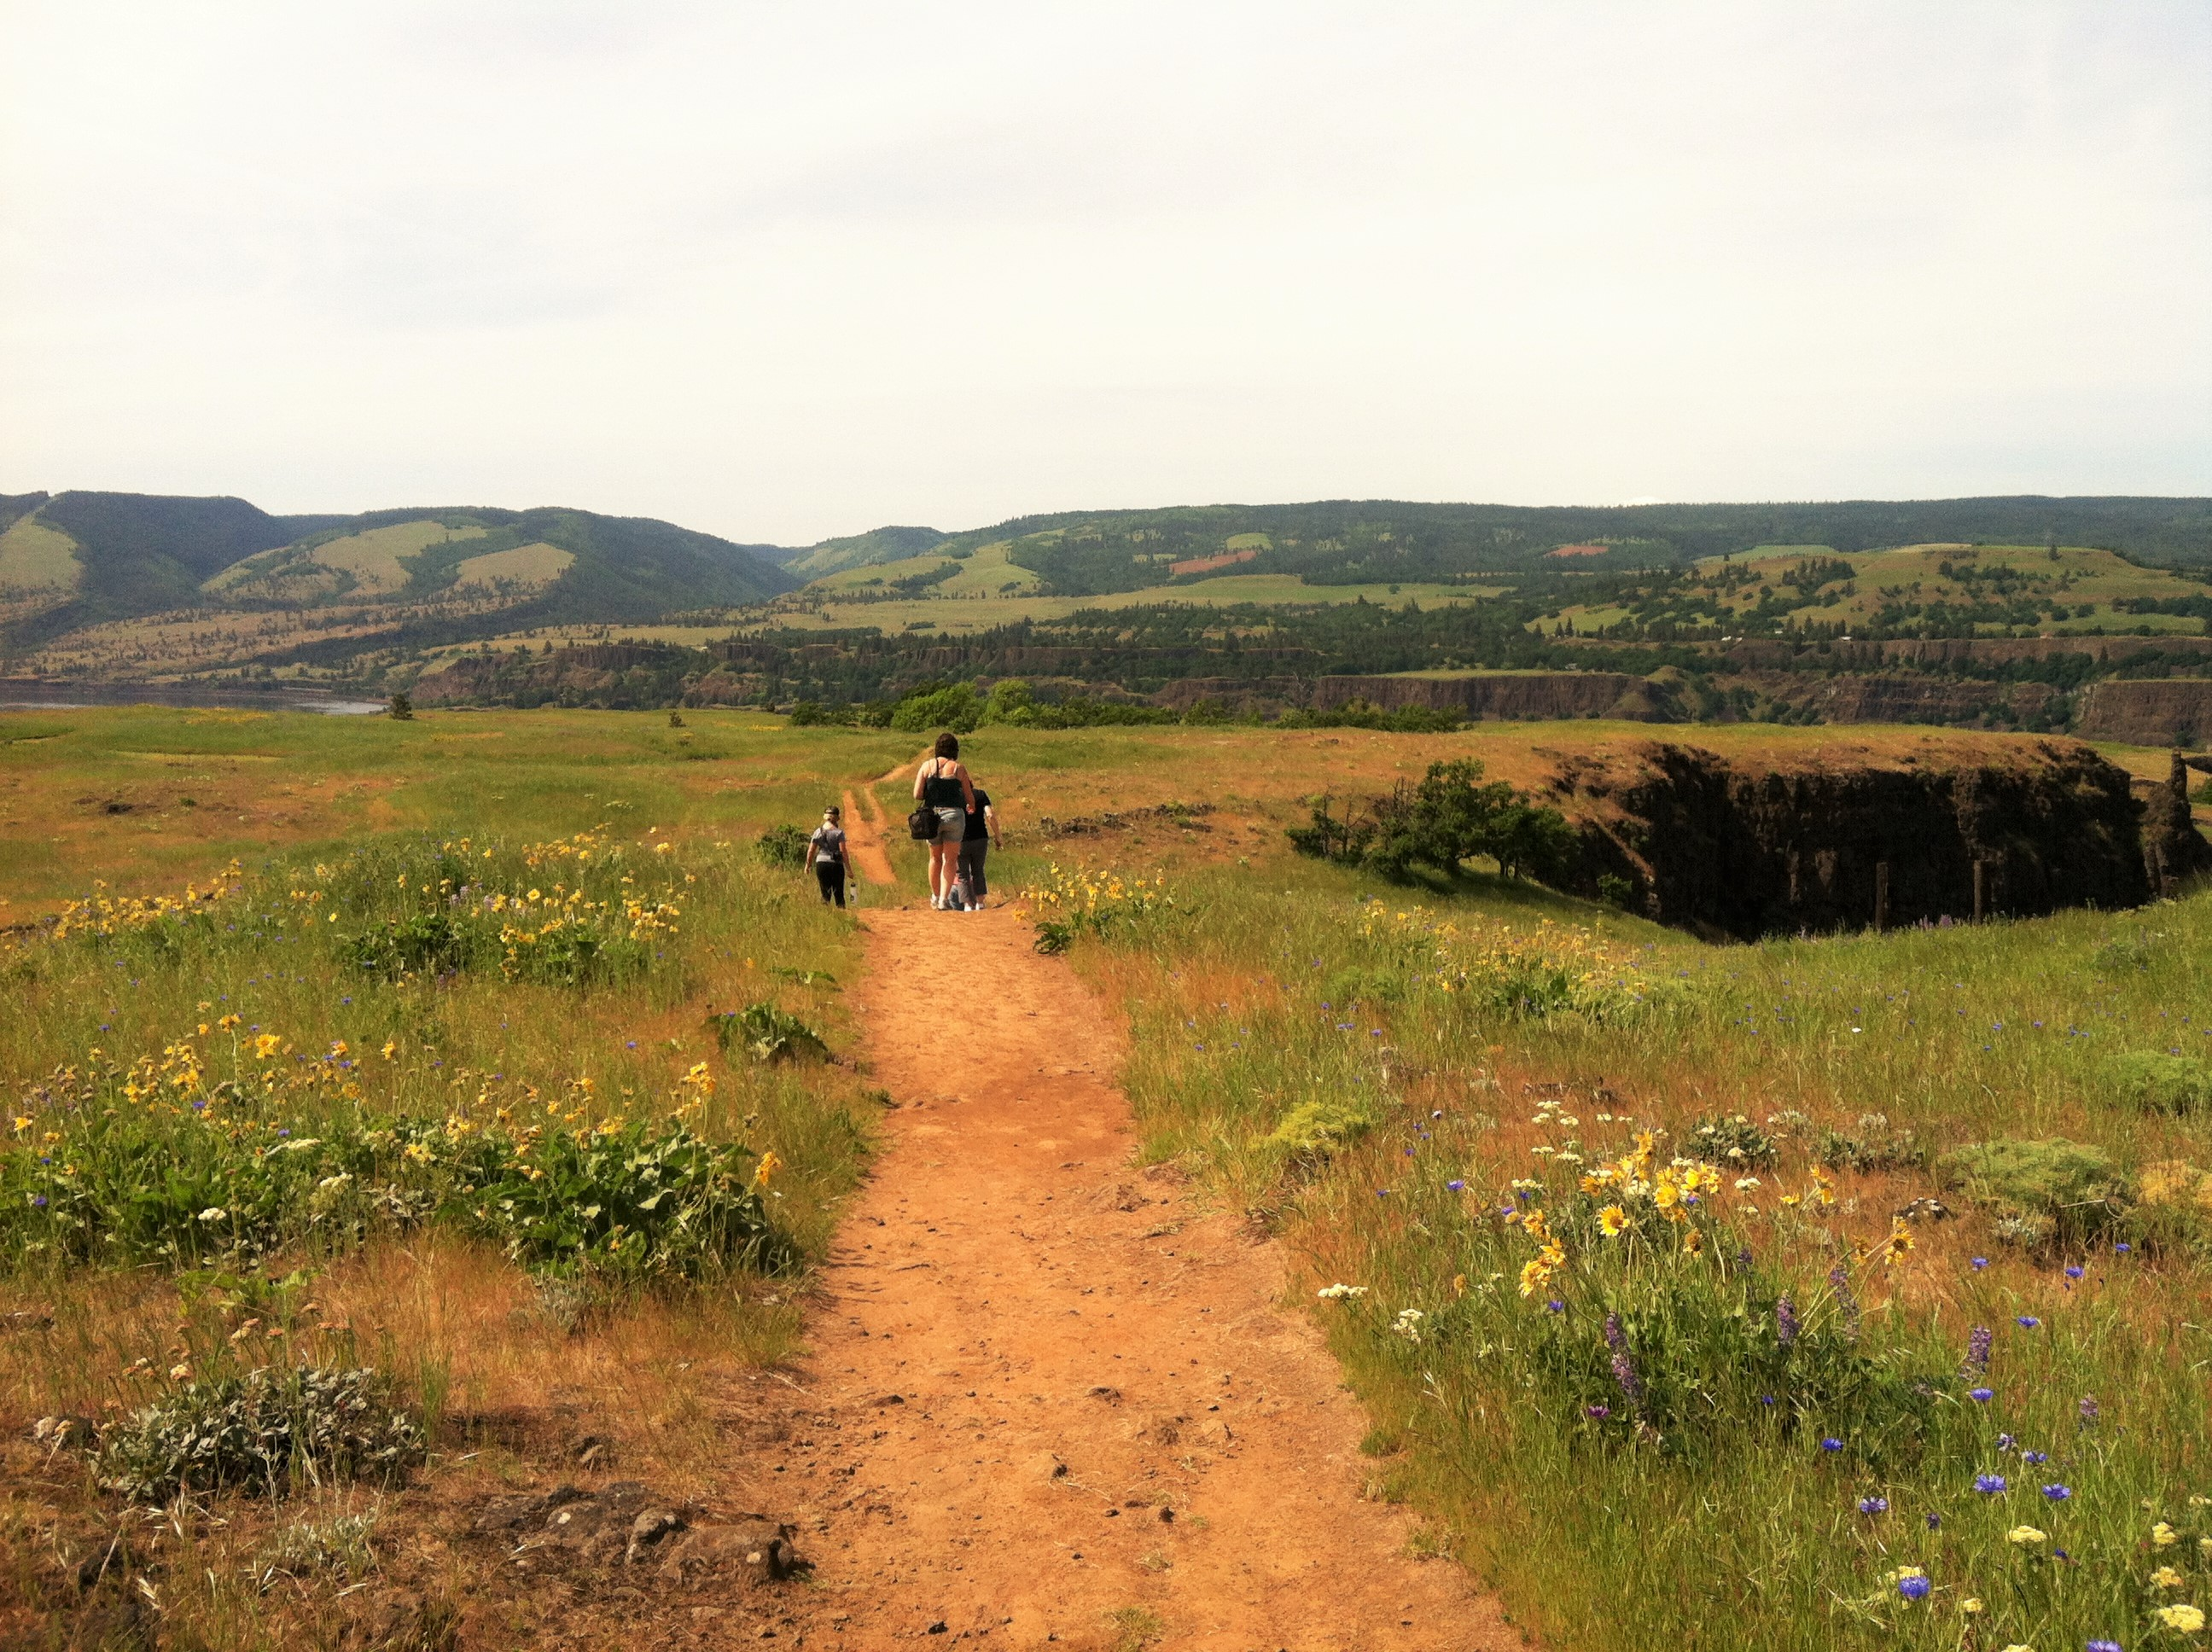 Hiking in the Tom McCall Preserve at Rowena, photo by Carrie Uffindell